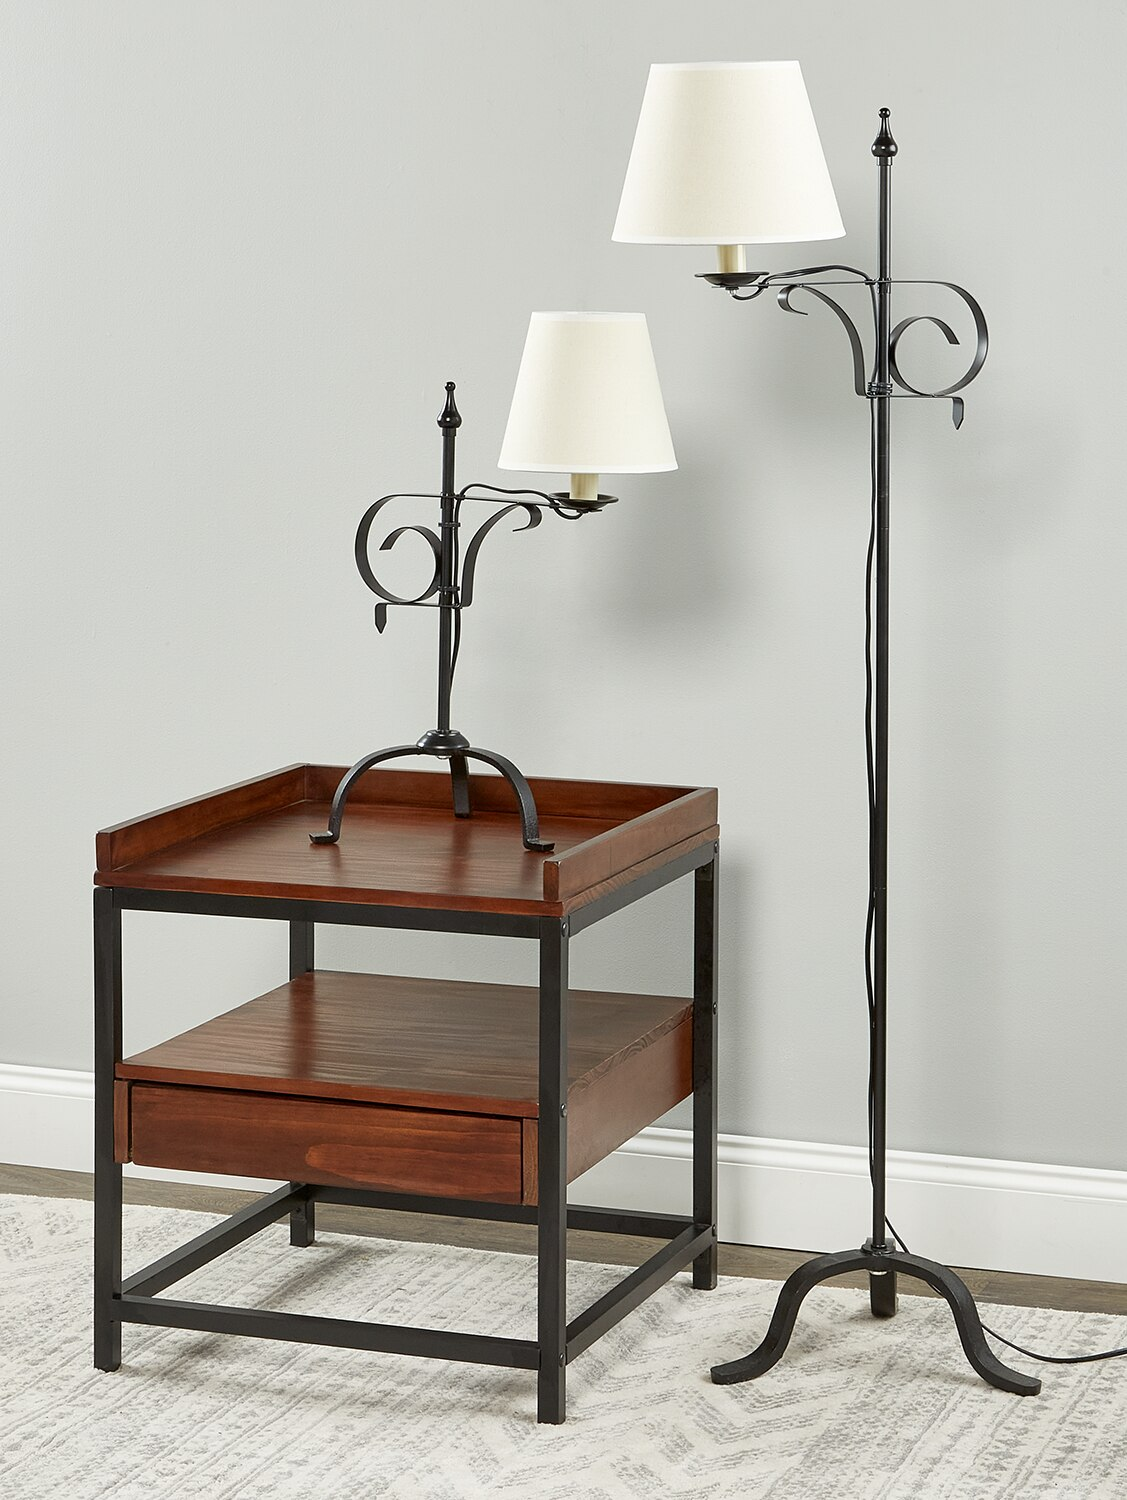 Home Decor Home Furnishings And Accents